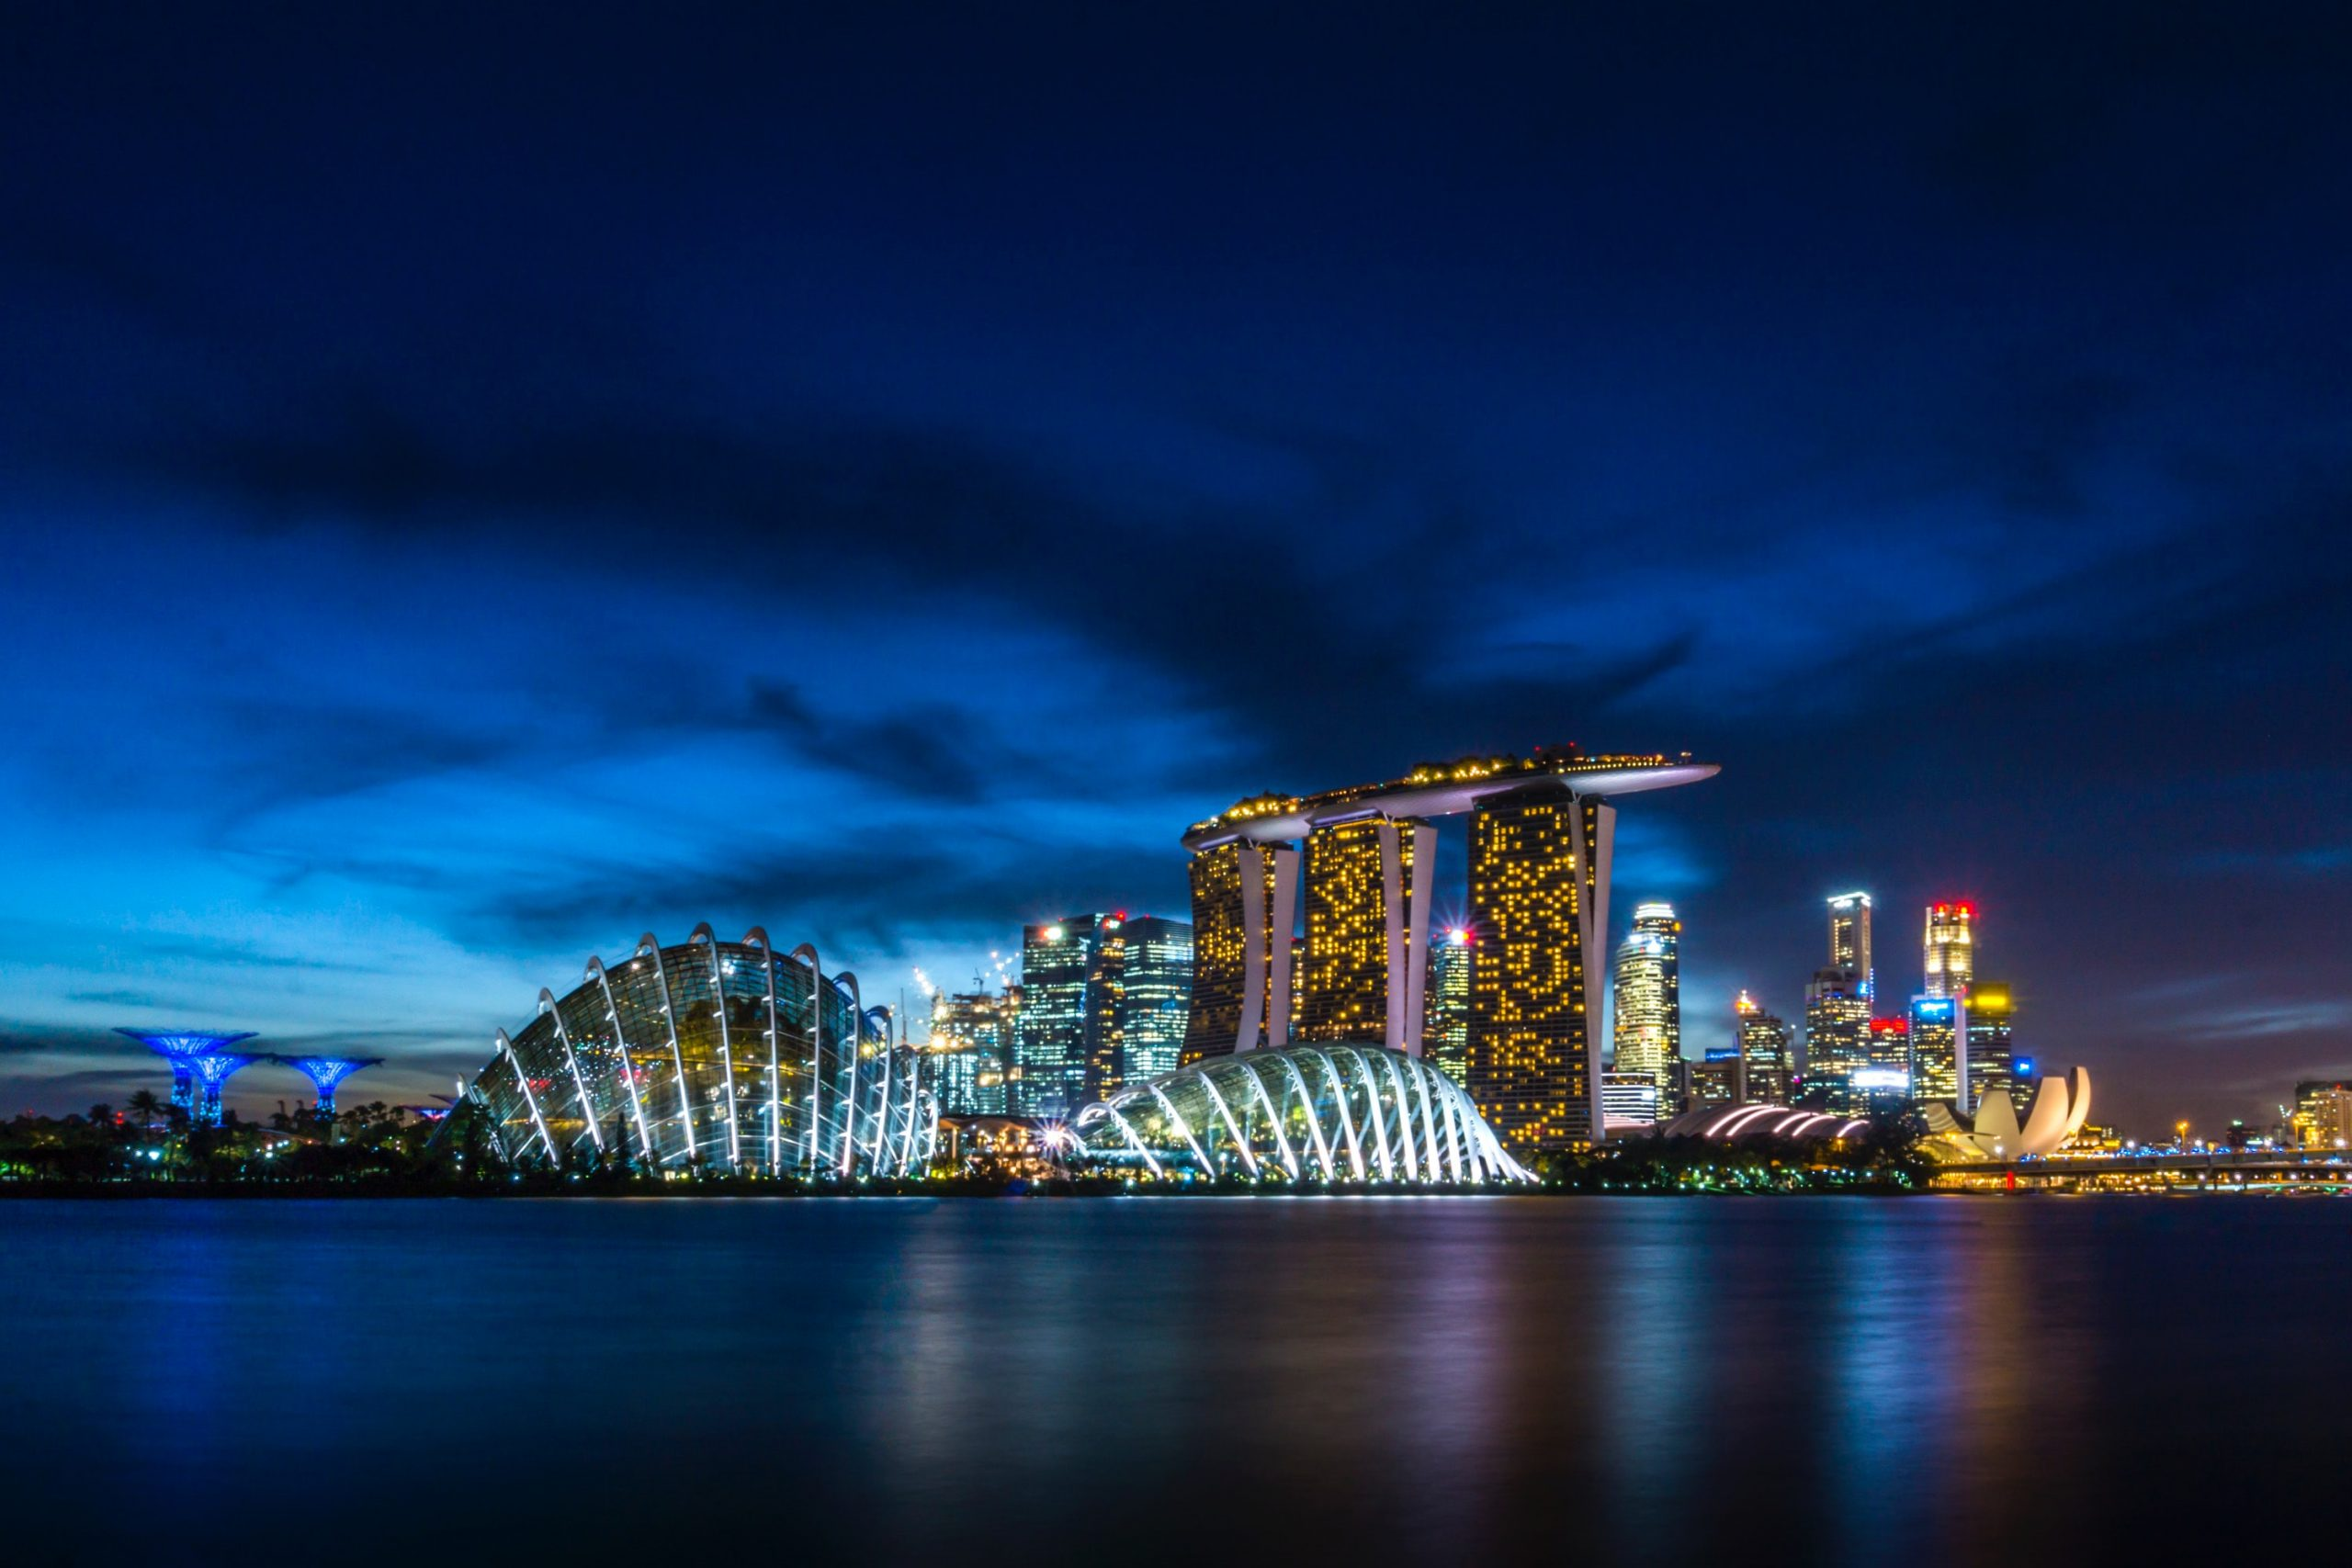 A Complete Guide For Your Upcoming Singapore Trip